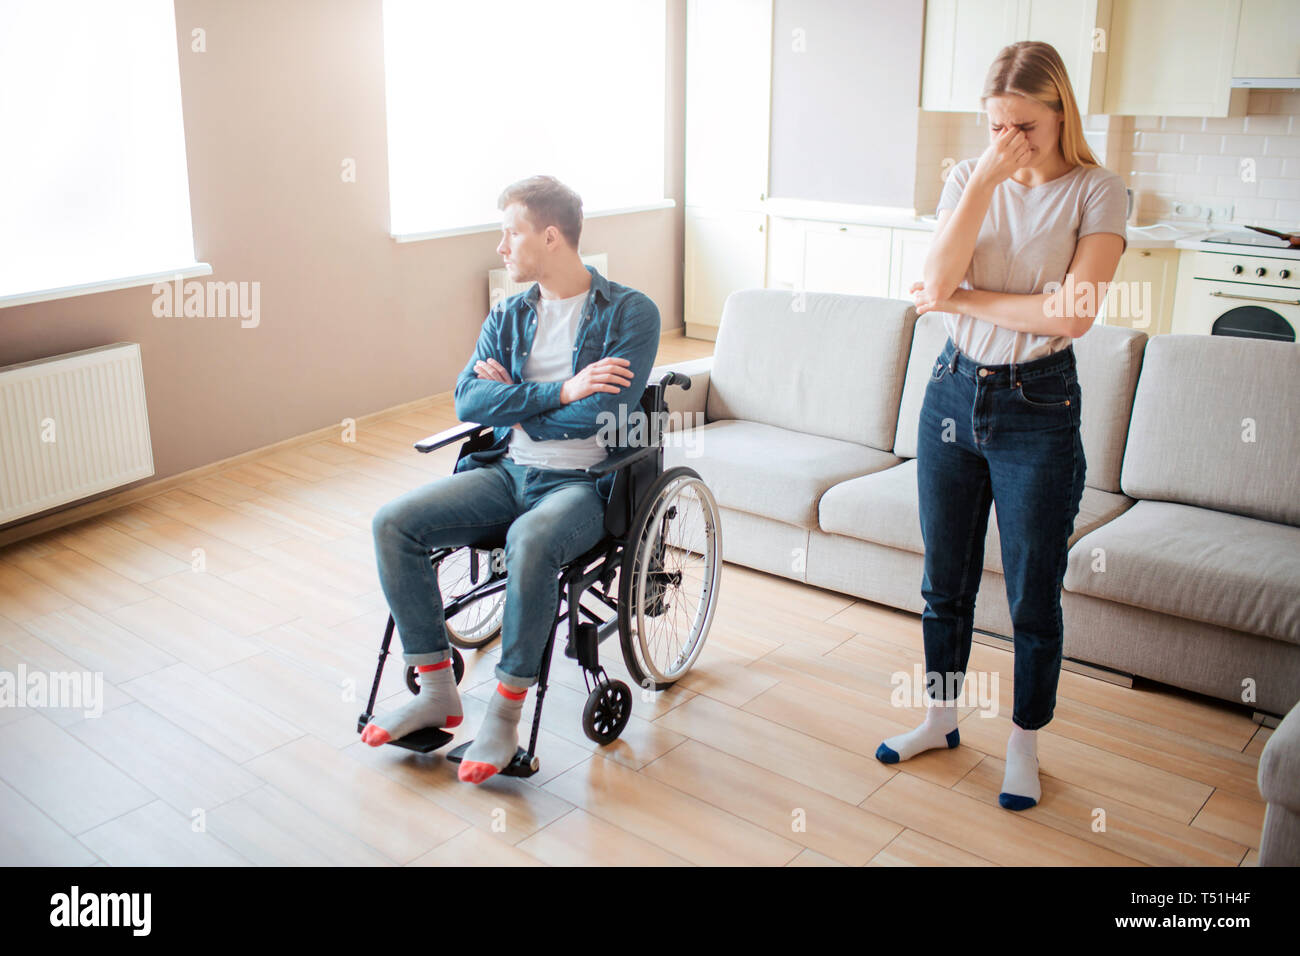 Upset young man with disability on wheelchair. Person with psecial needs. Hands crossed and looking at window. Young woman stand beside and cry - Stock Image